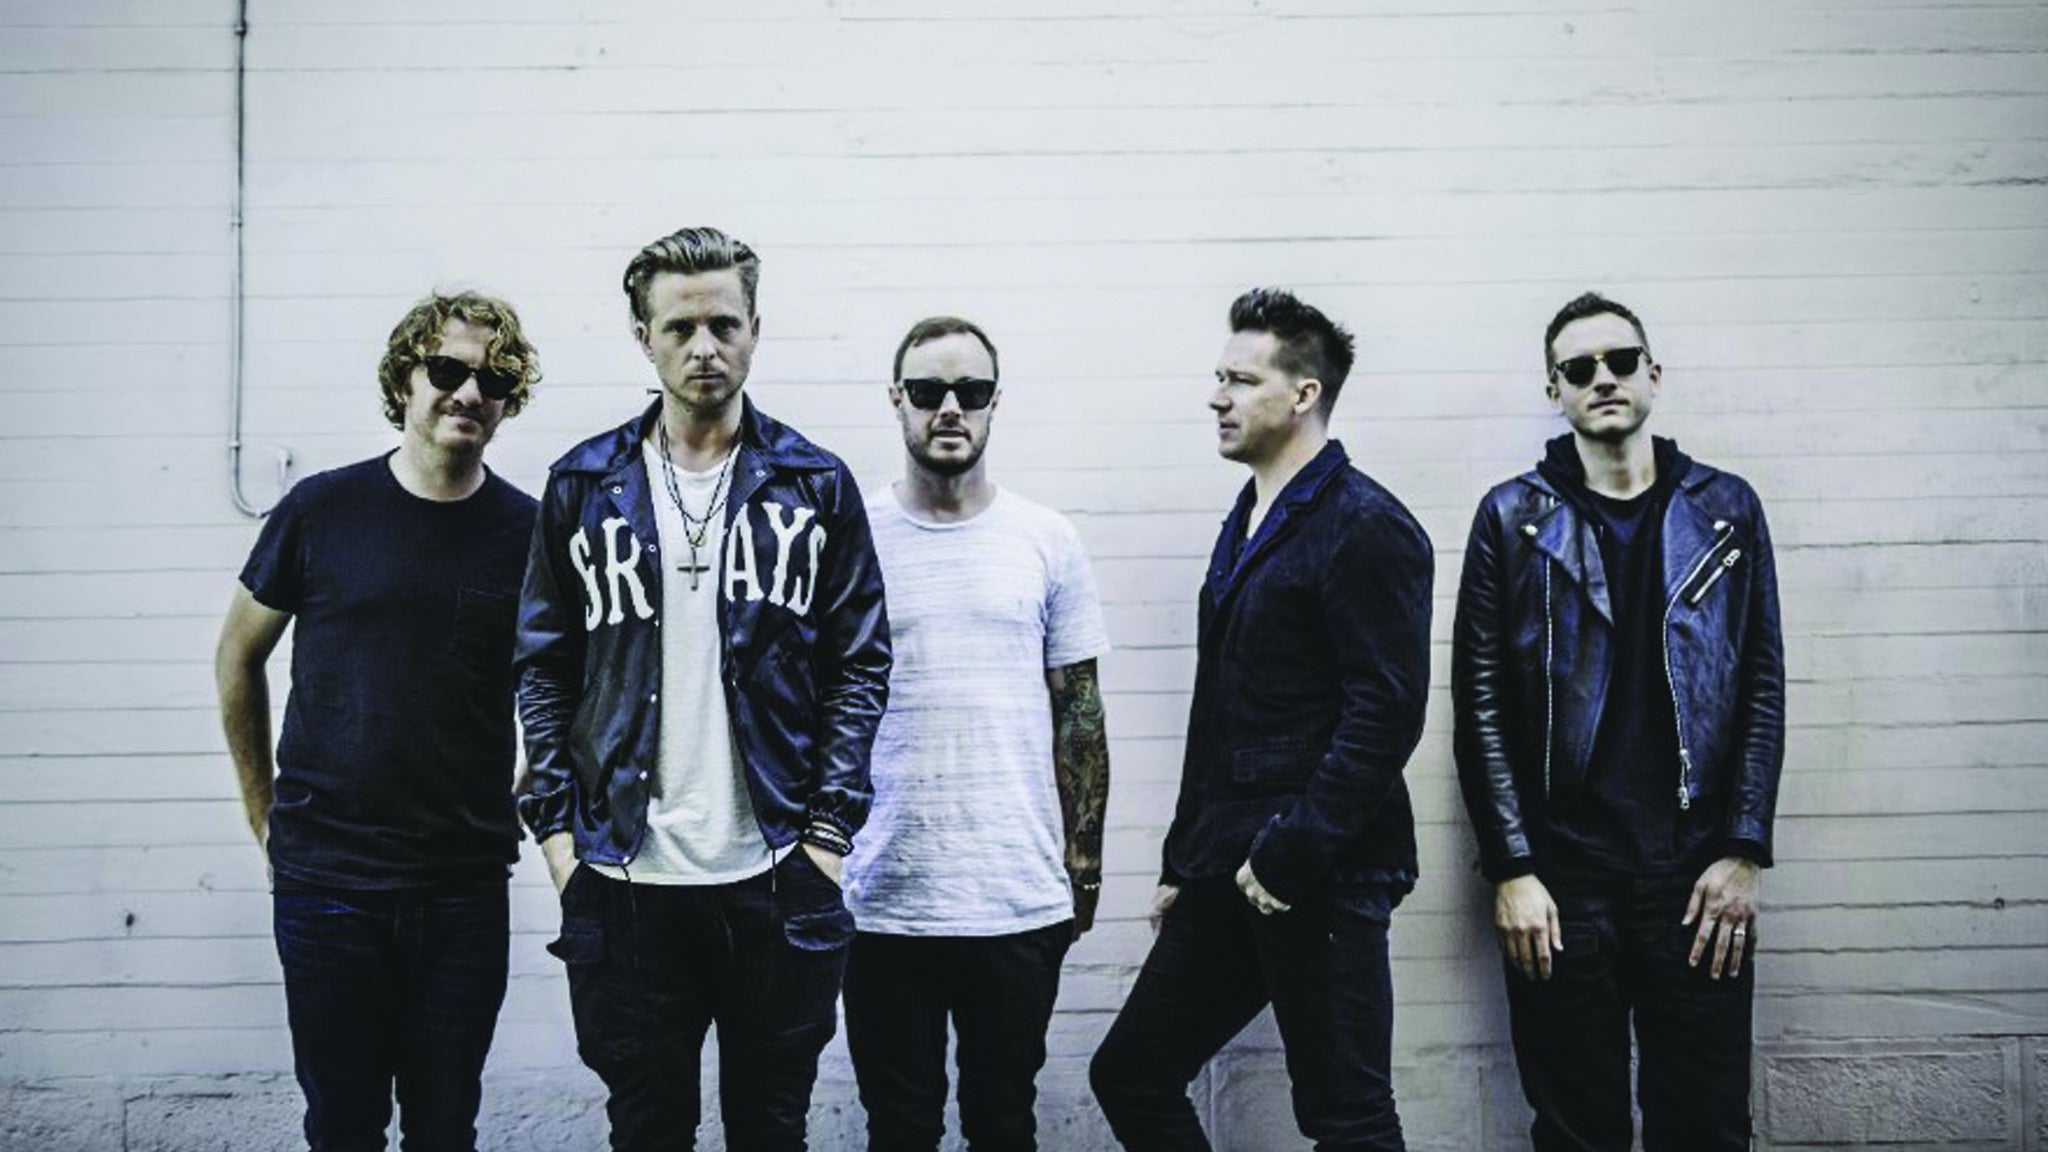 2017 Honda Civic Tour Featuring OneRepublic at Honda Center